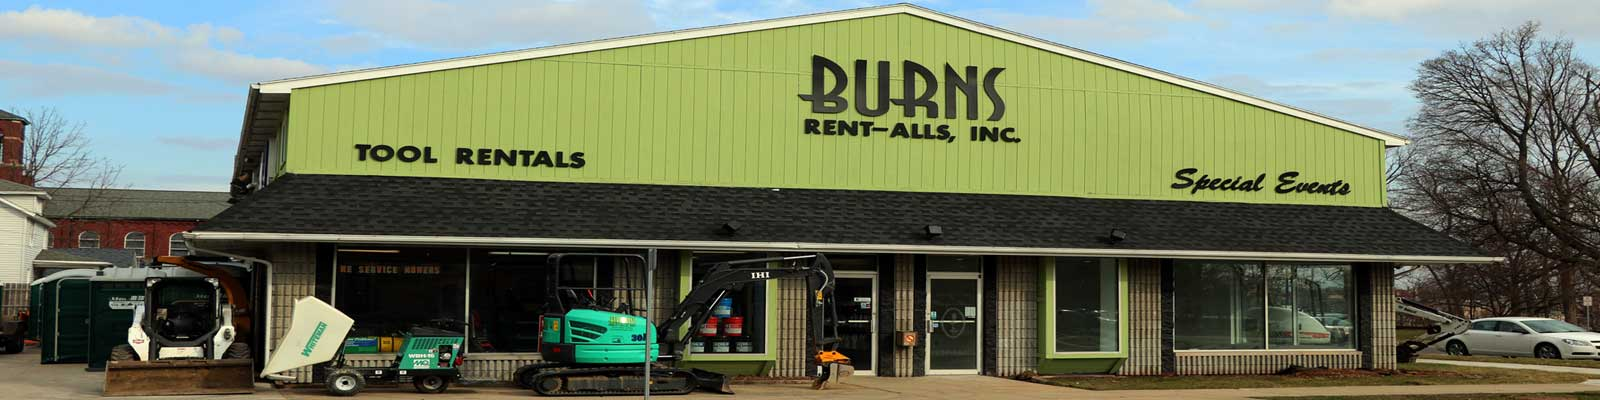 Burns Rent-Alls is conveniently located in Mishawaka IN